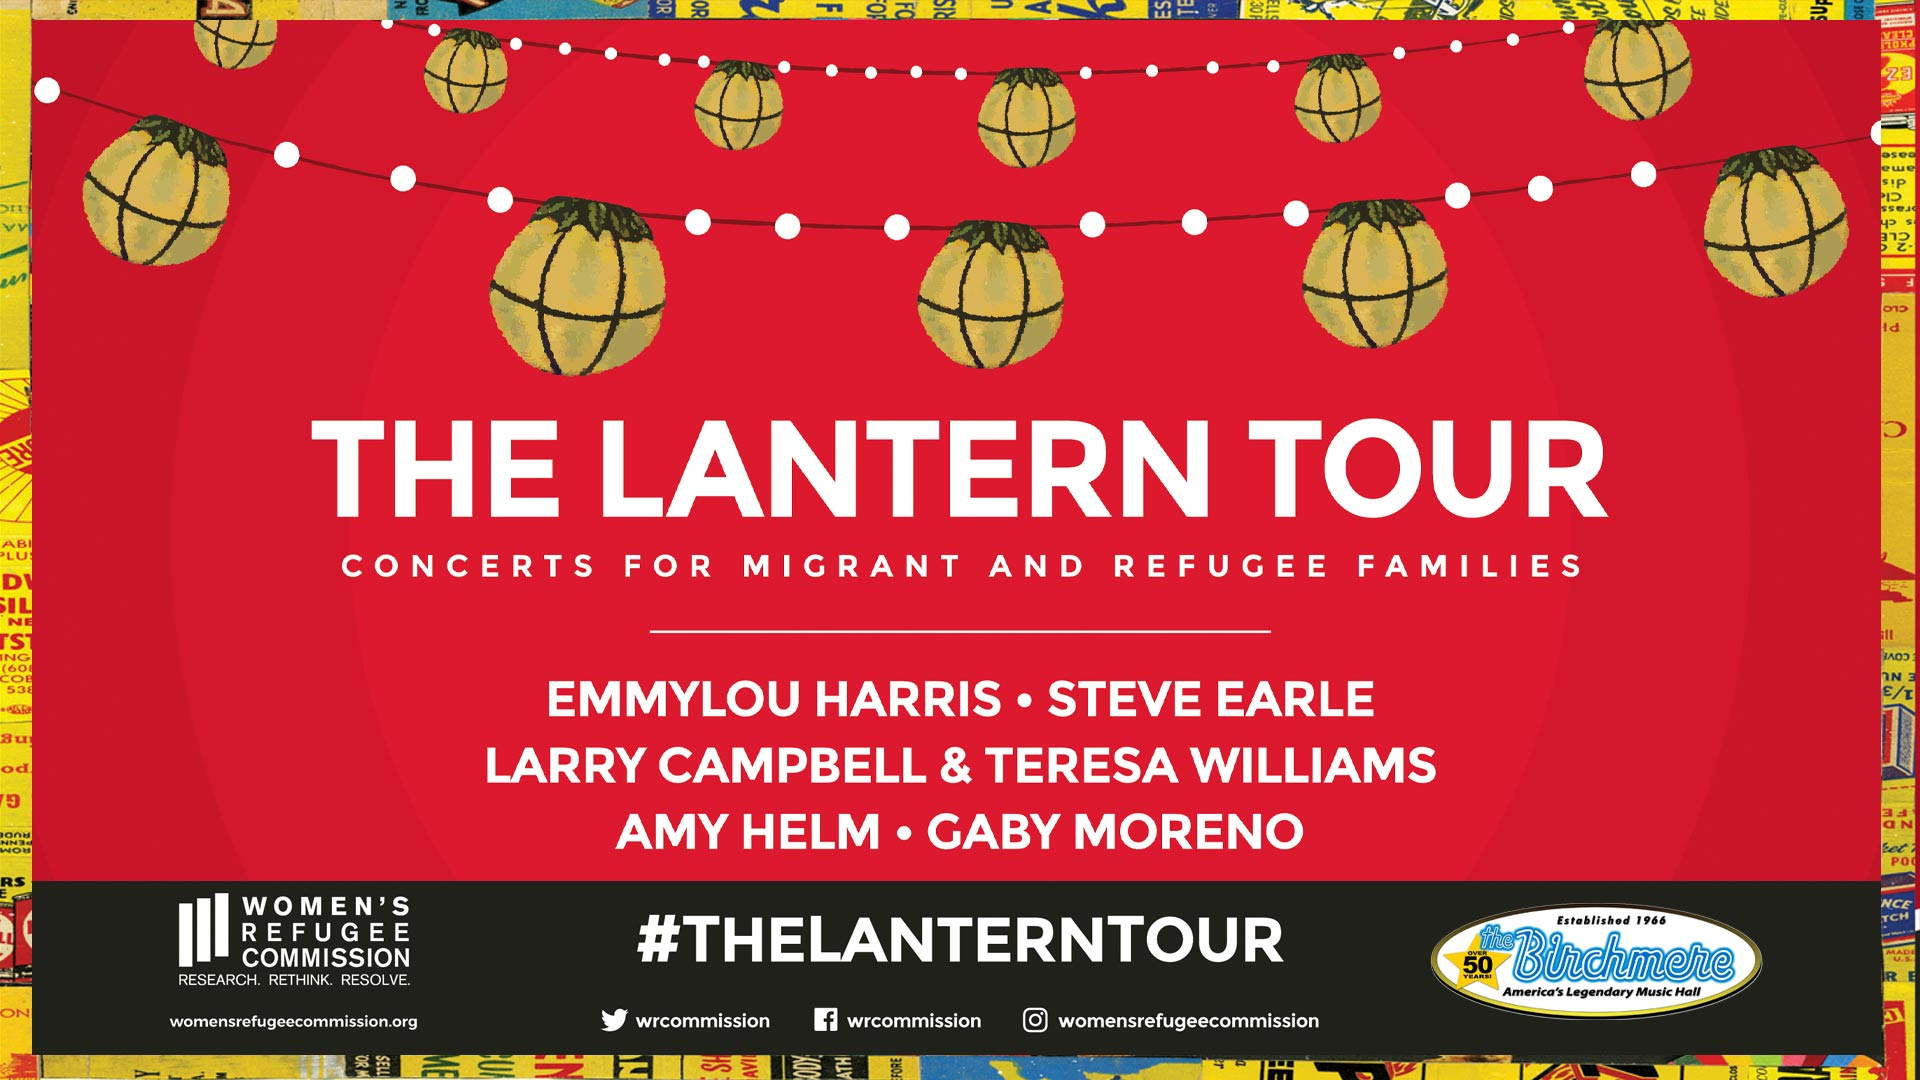 the lantern tour, concert, capital one hall, capital one center, things to do in DC, Tysons, women's refugee commission, birchmere presents, emmylou harris, steve earle, amy helm, larry campbell, teresa williams, gaby moreno